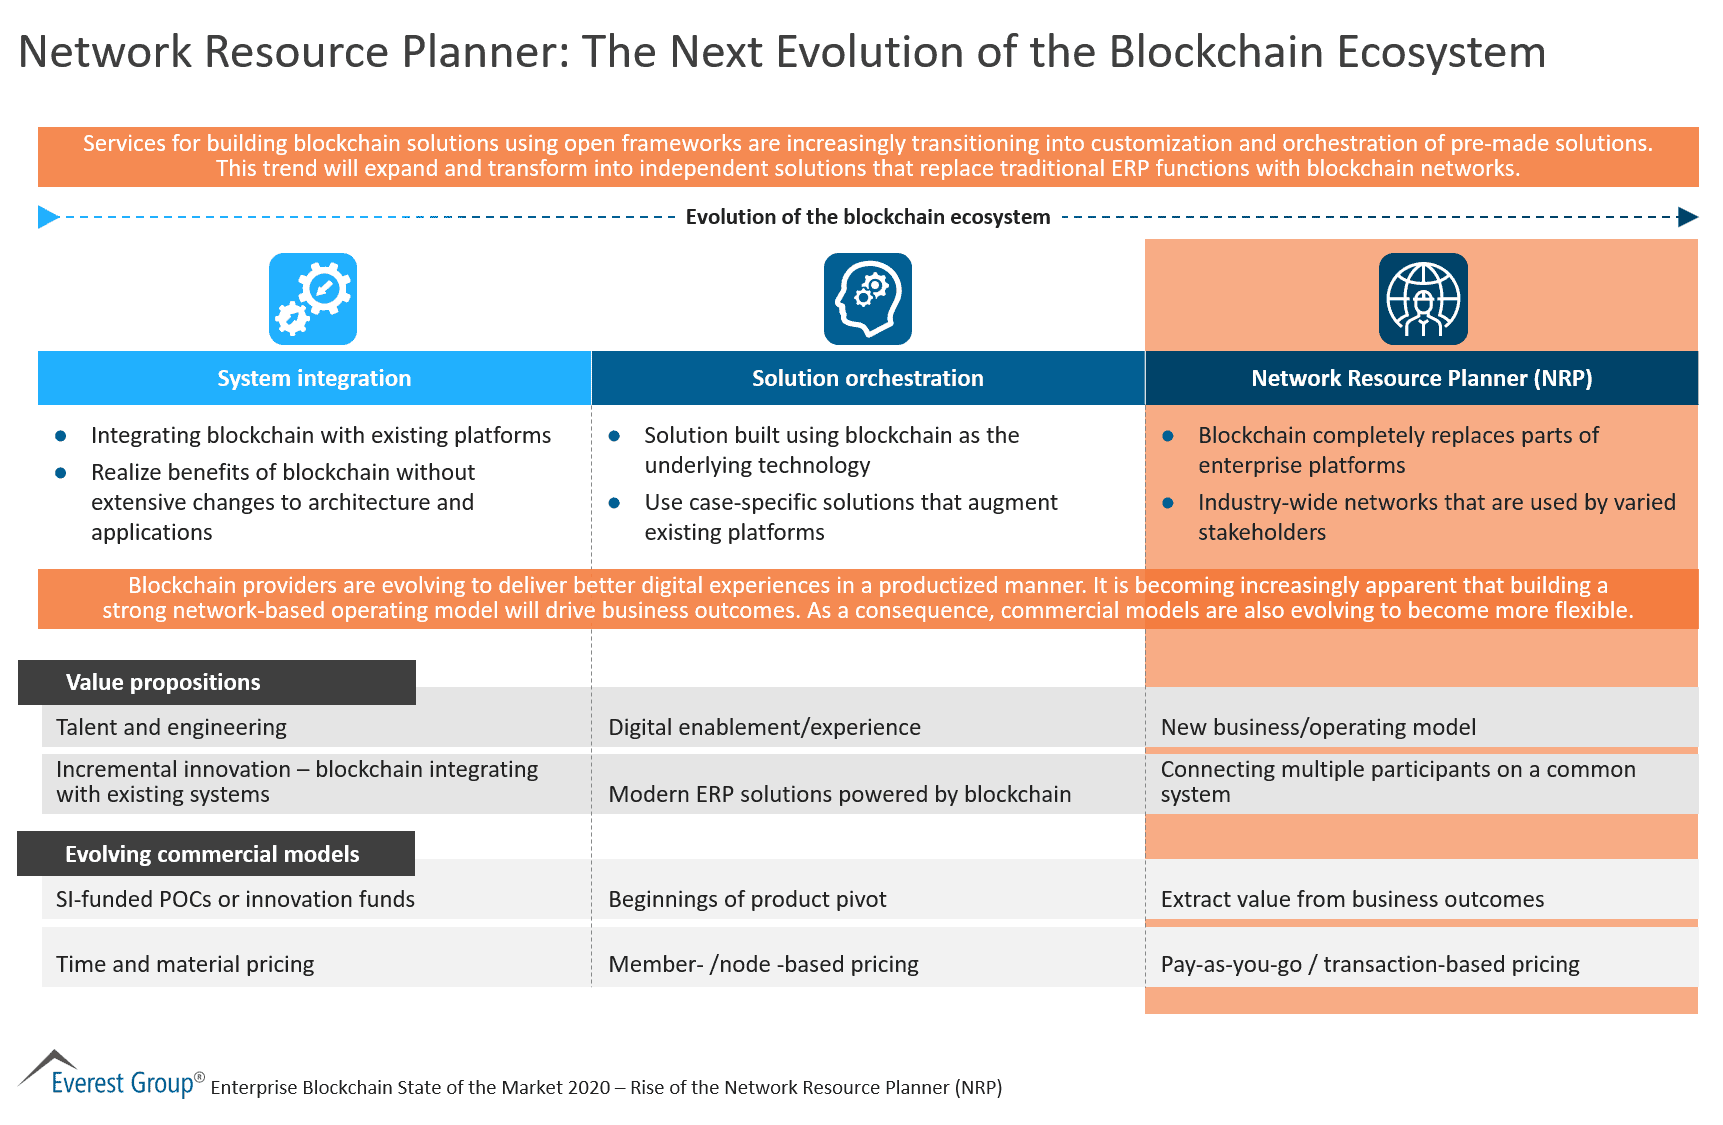 Network Resource Planner: The Next Evolution of the Blockchain Ecosystem